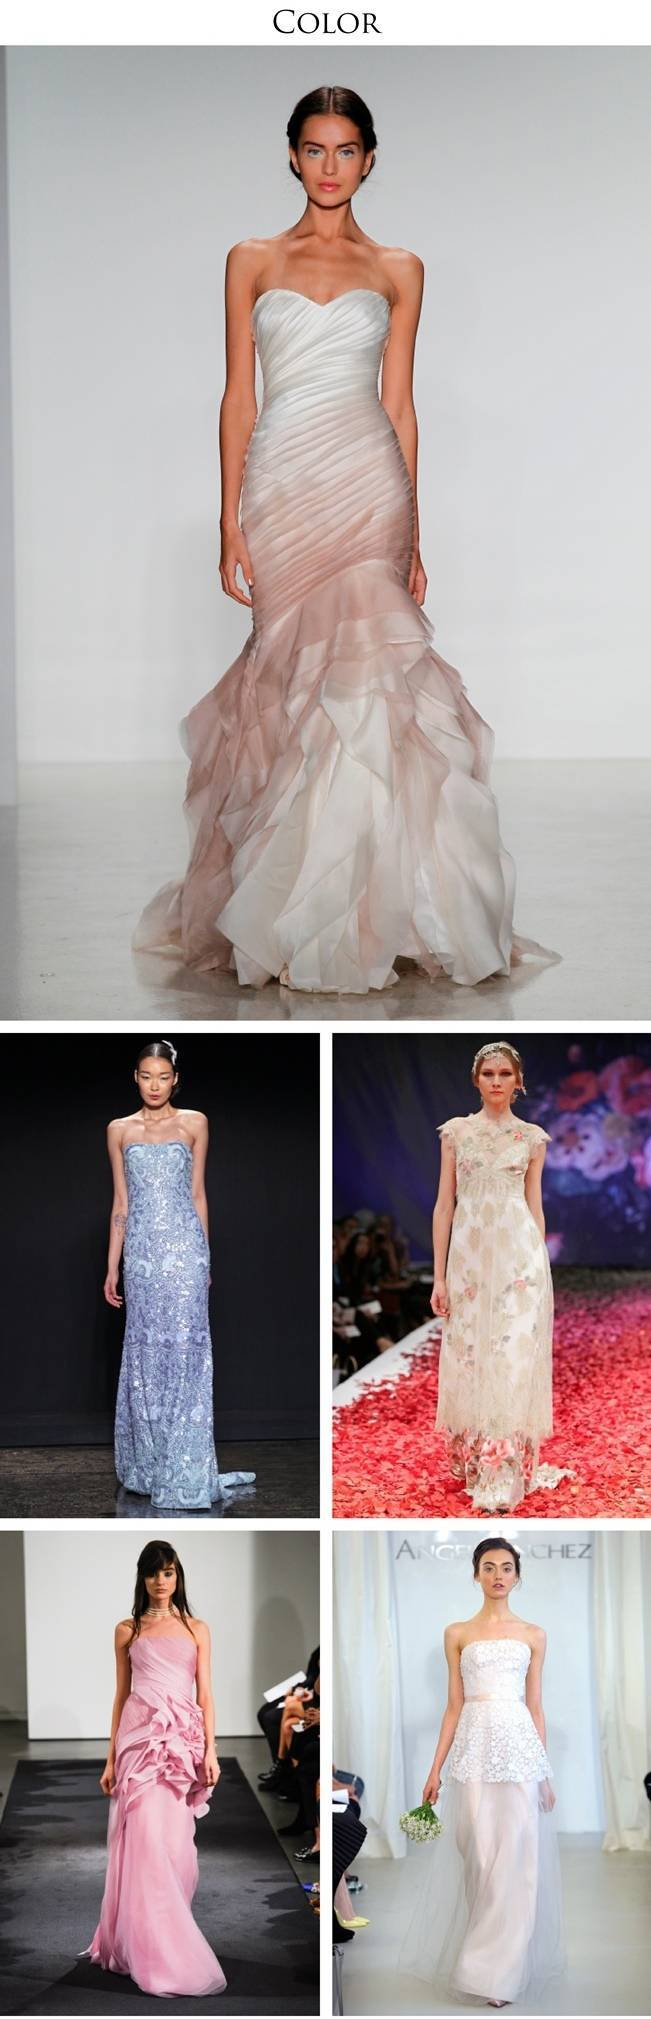 2014 Bridal Runway Trends & Some of Our Favorite Looks